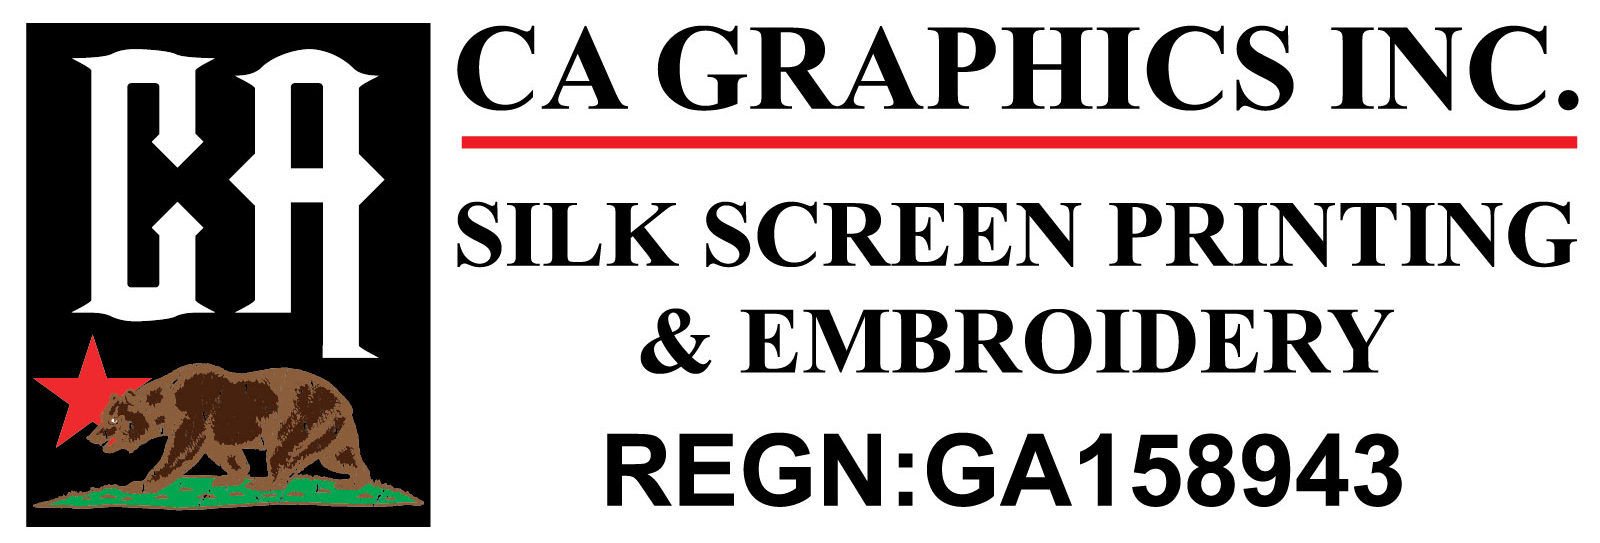 CA GRAPHICS INC.